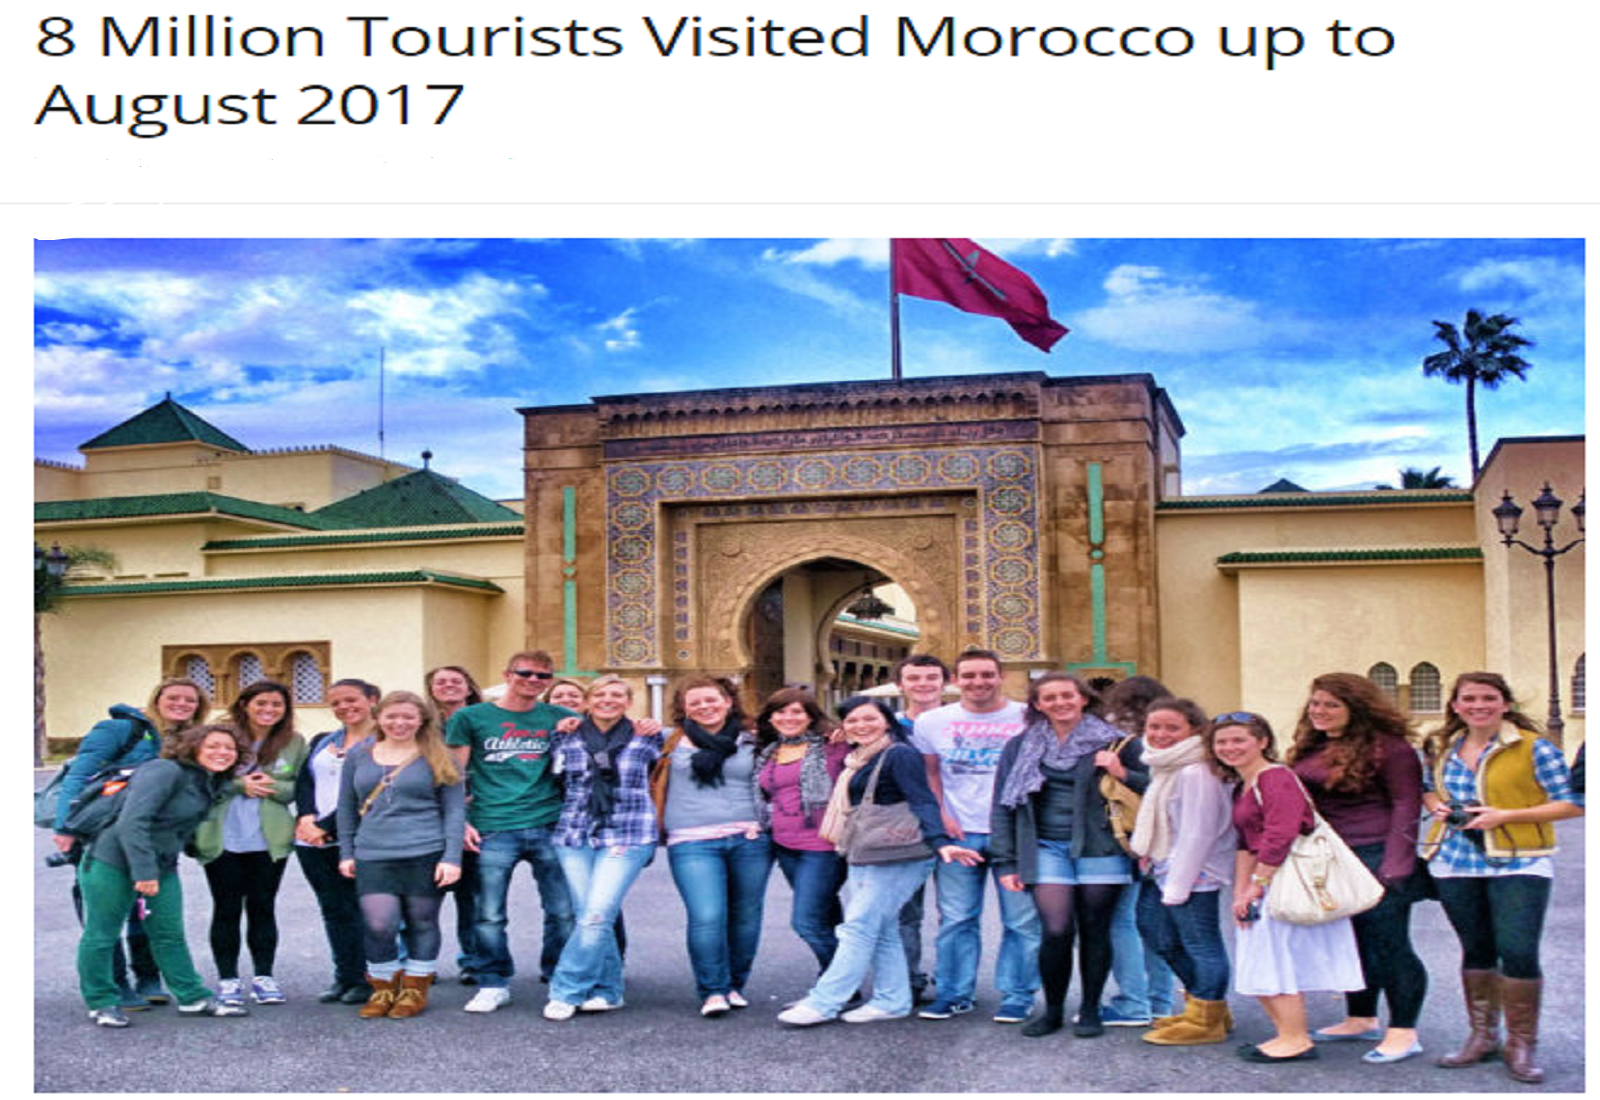 8 Million Tourists Visited Morocco up to August 2017